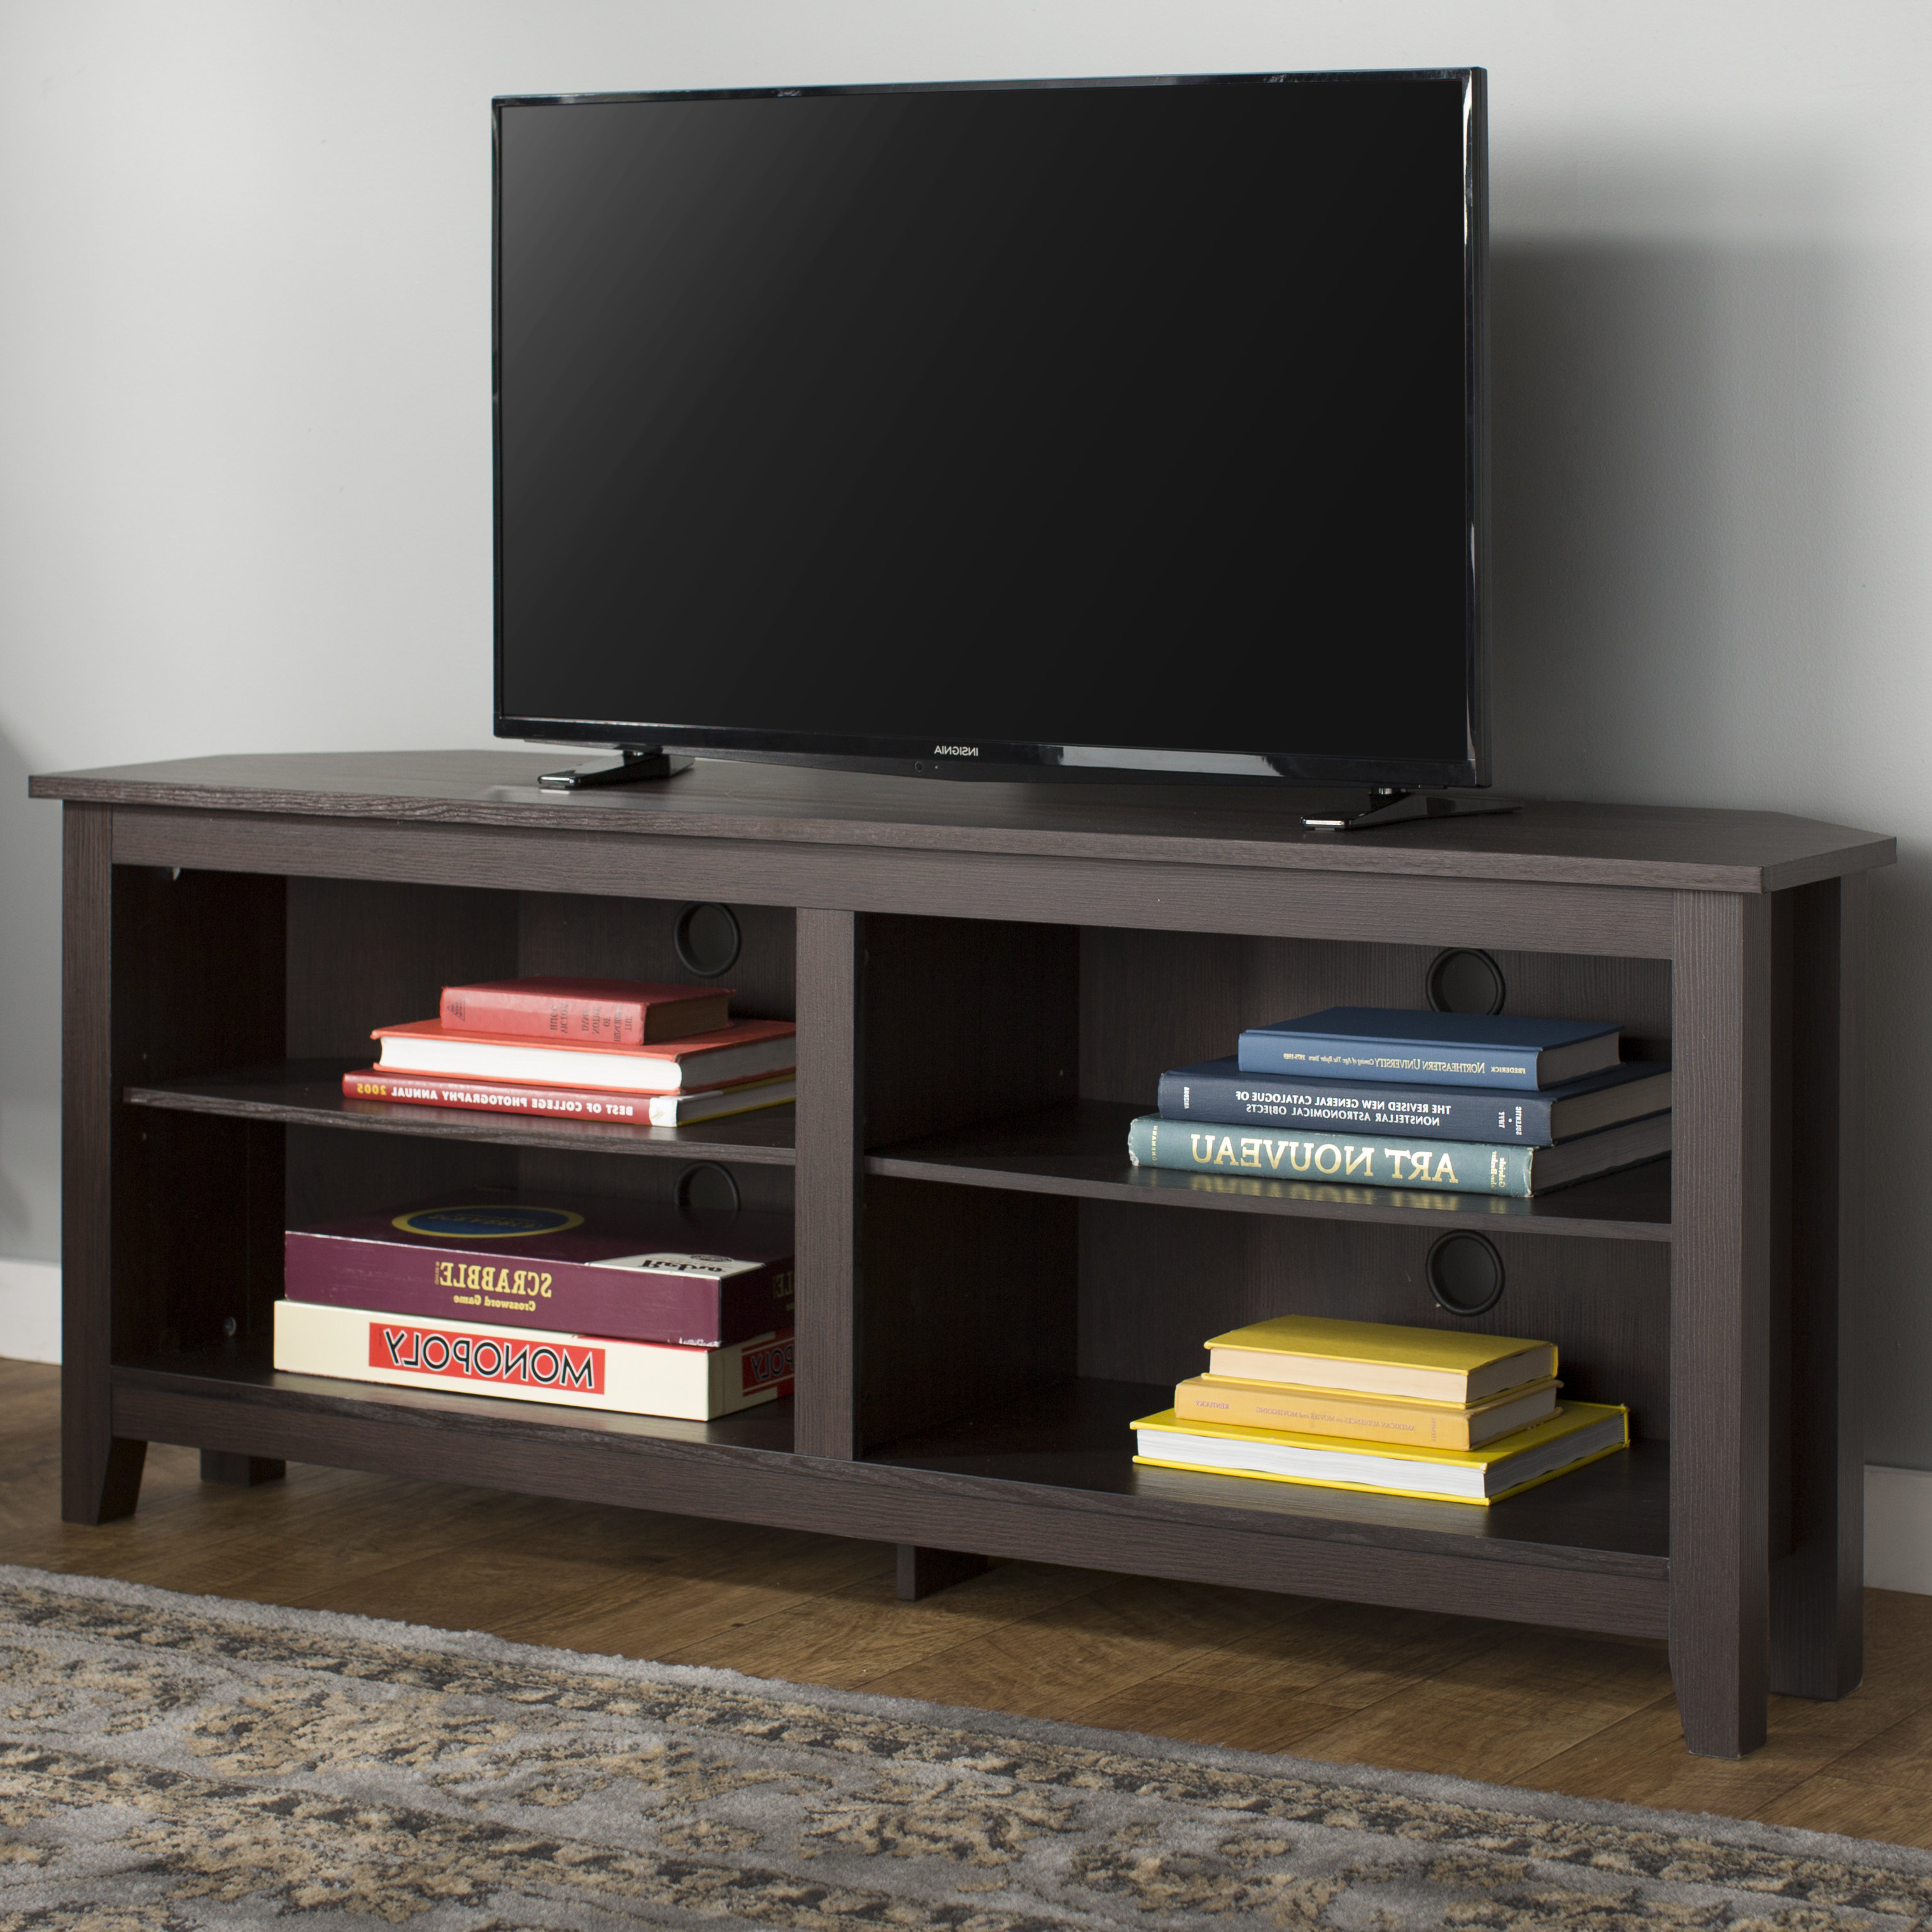 Wayfair With Regard To Oxford 60 Inch Tv Stands (Gallery 10 of 20)